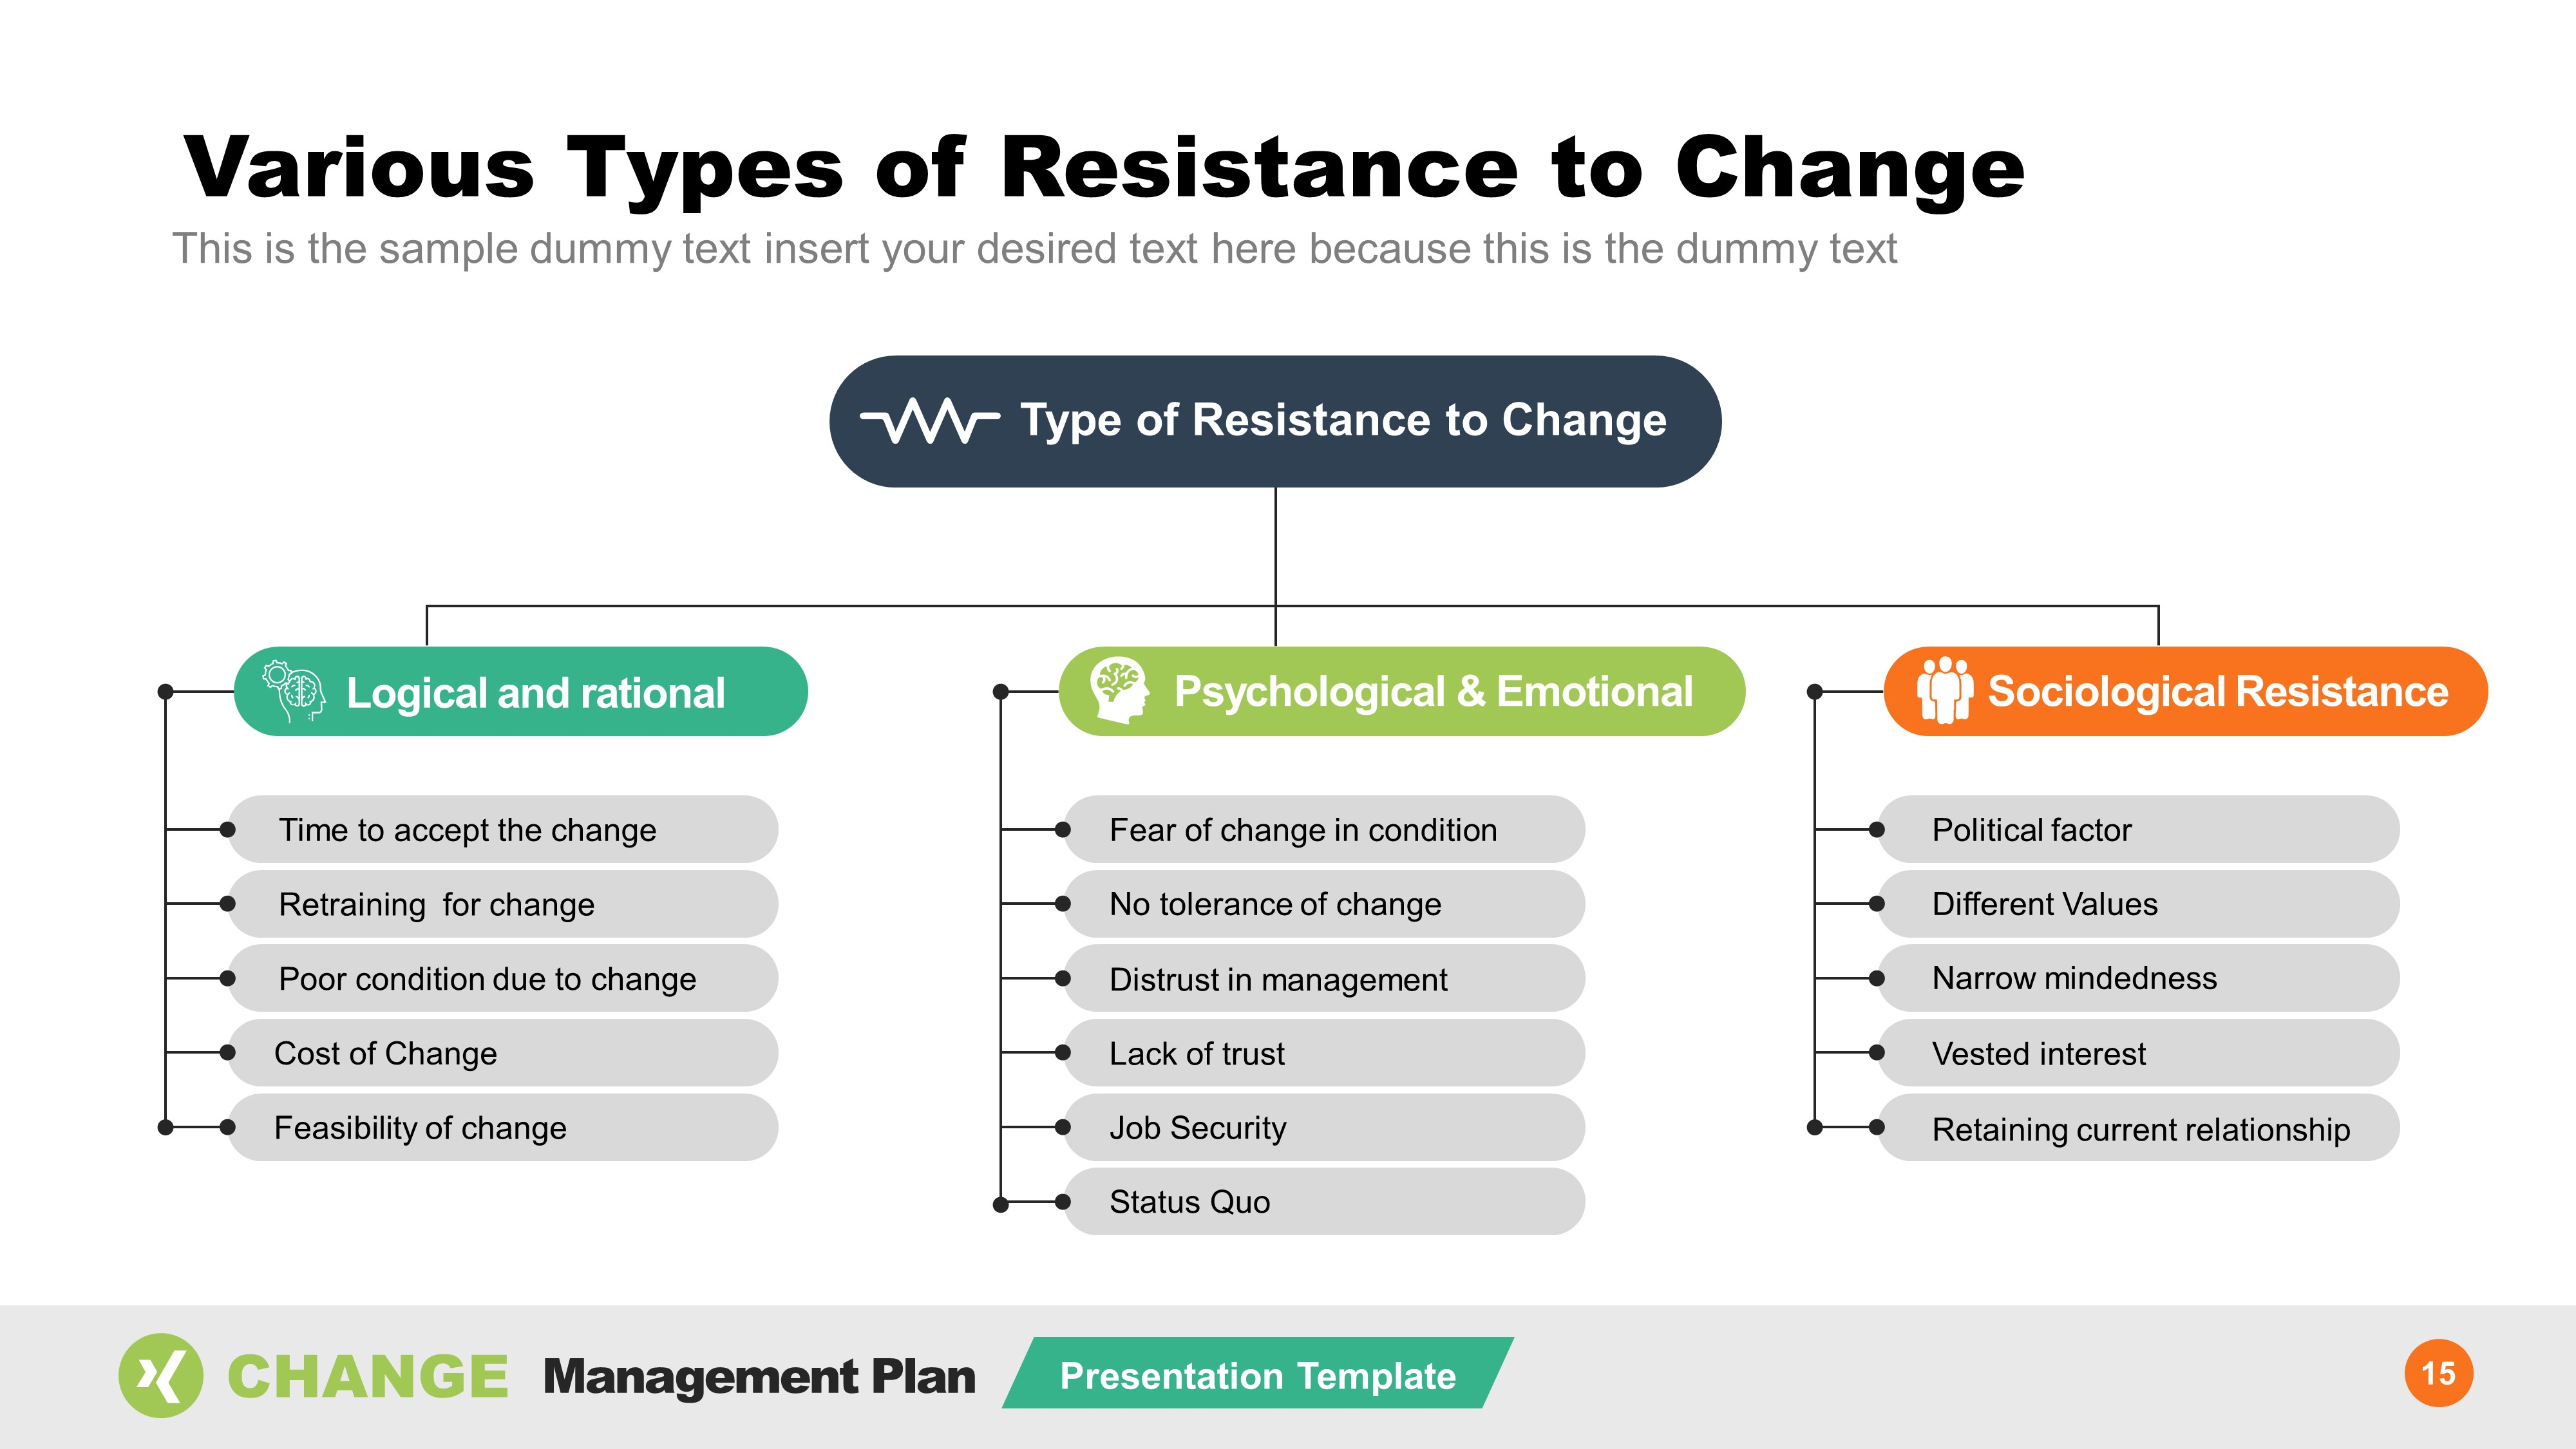 Resistance to Change Types Template